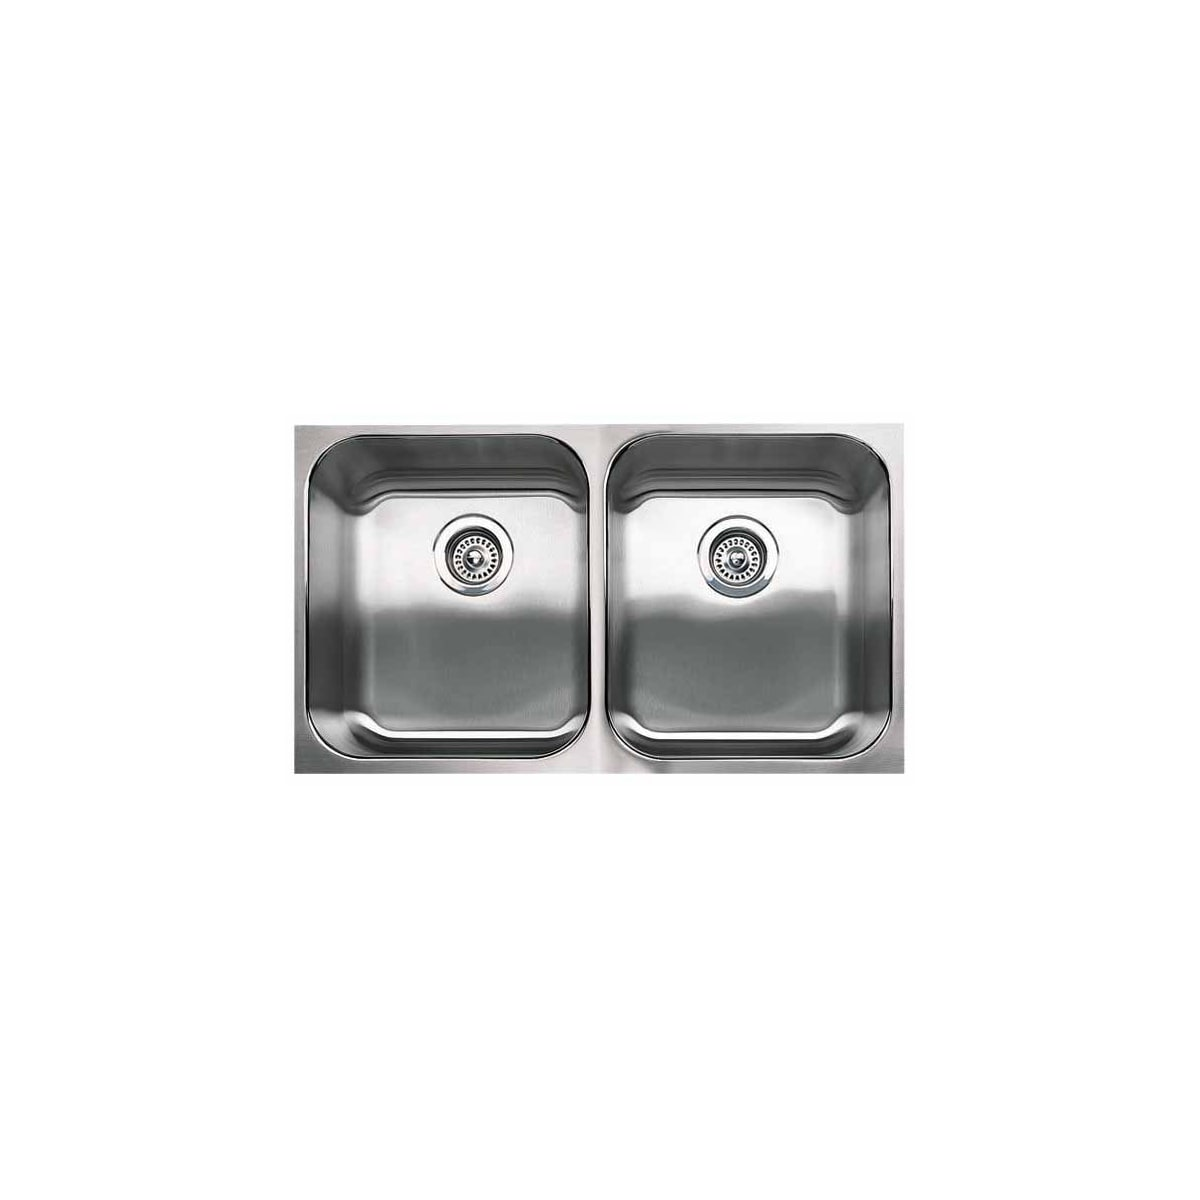 "Blanco Spex 31-1/8"" Undermount Double Basin Stainless Steel Kitchen Sink"